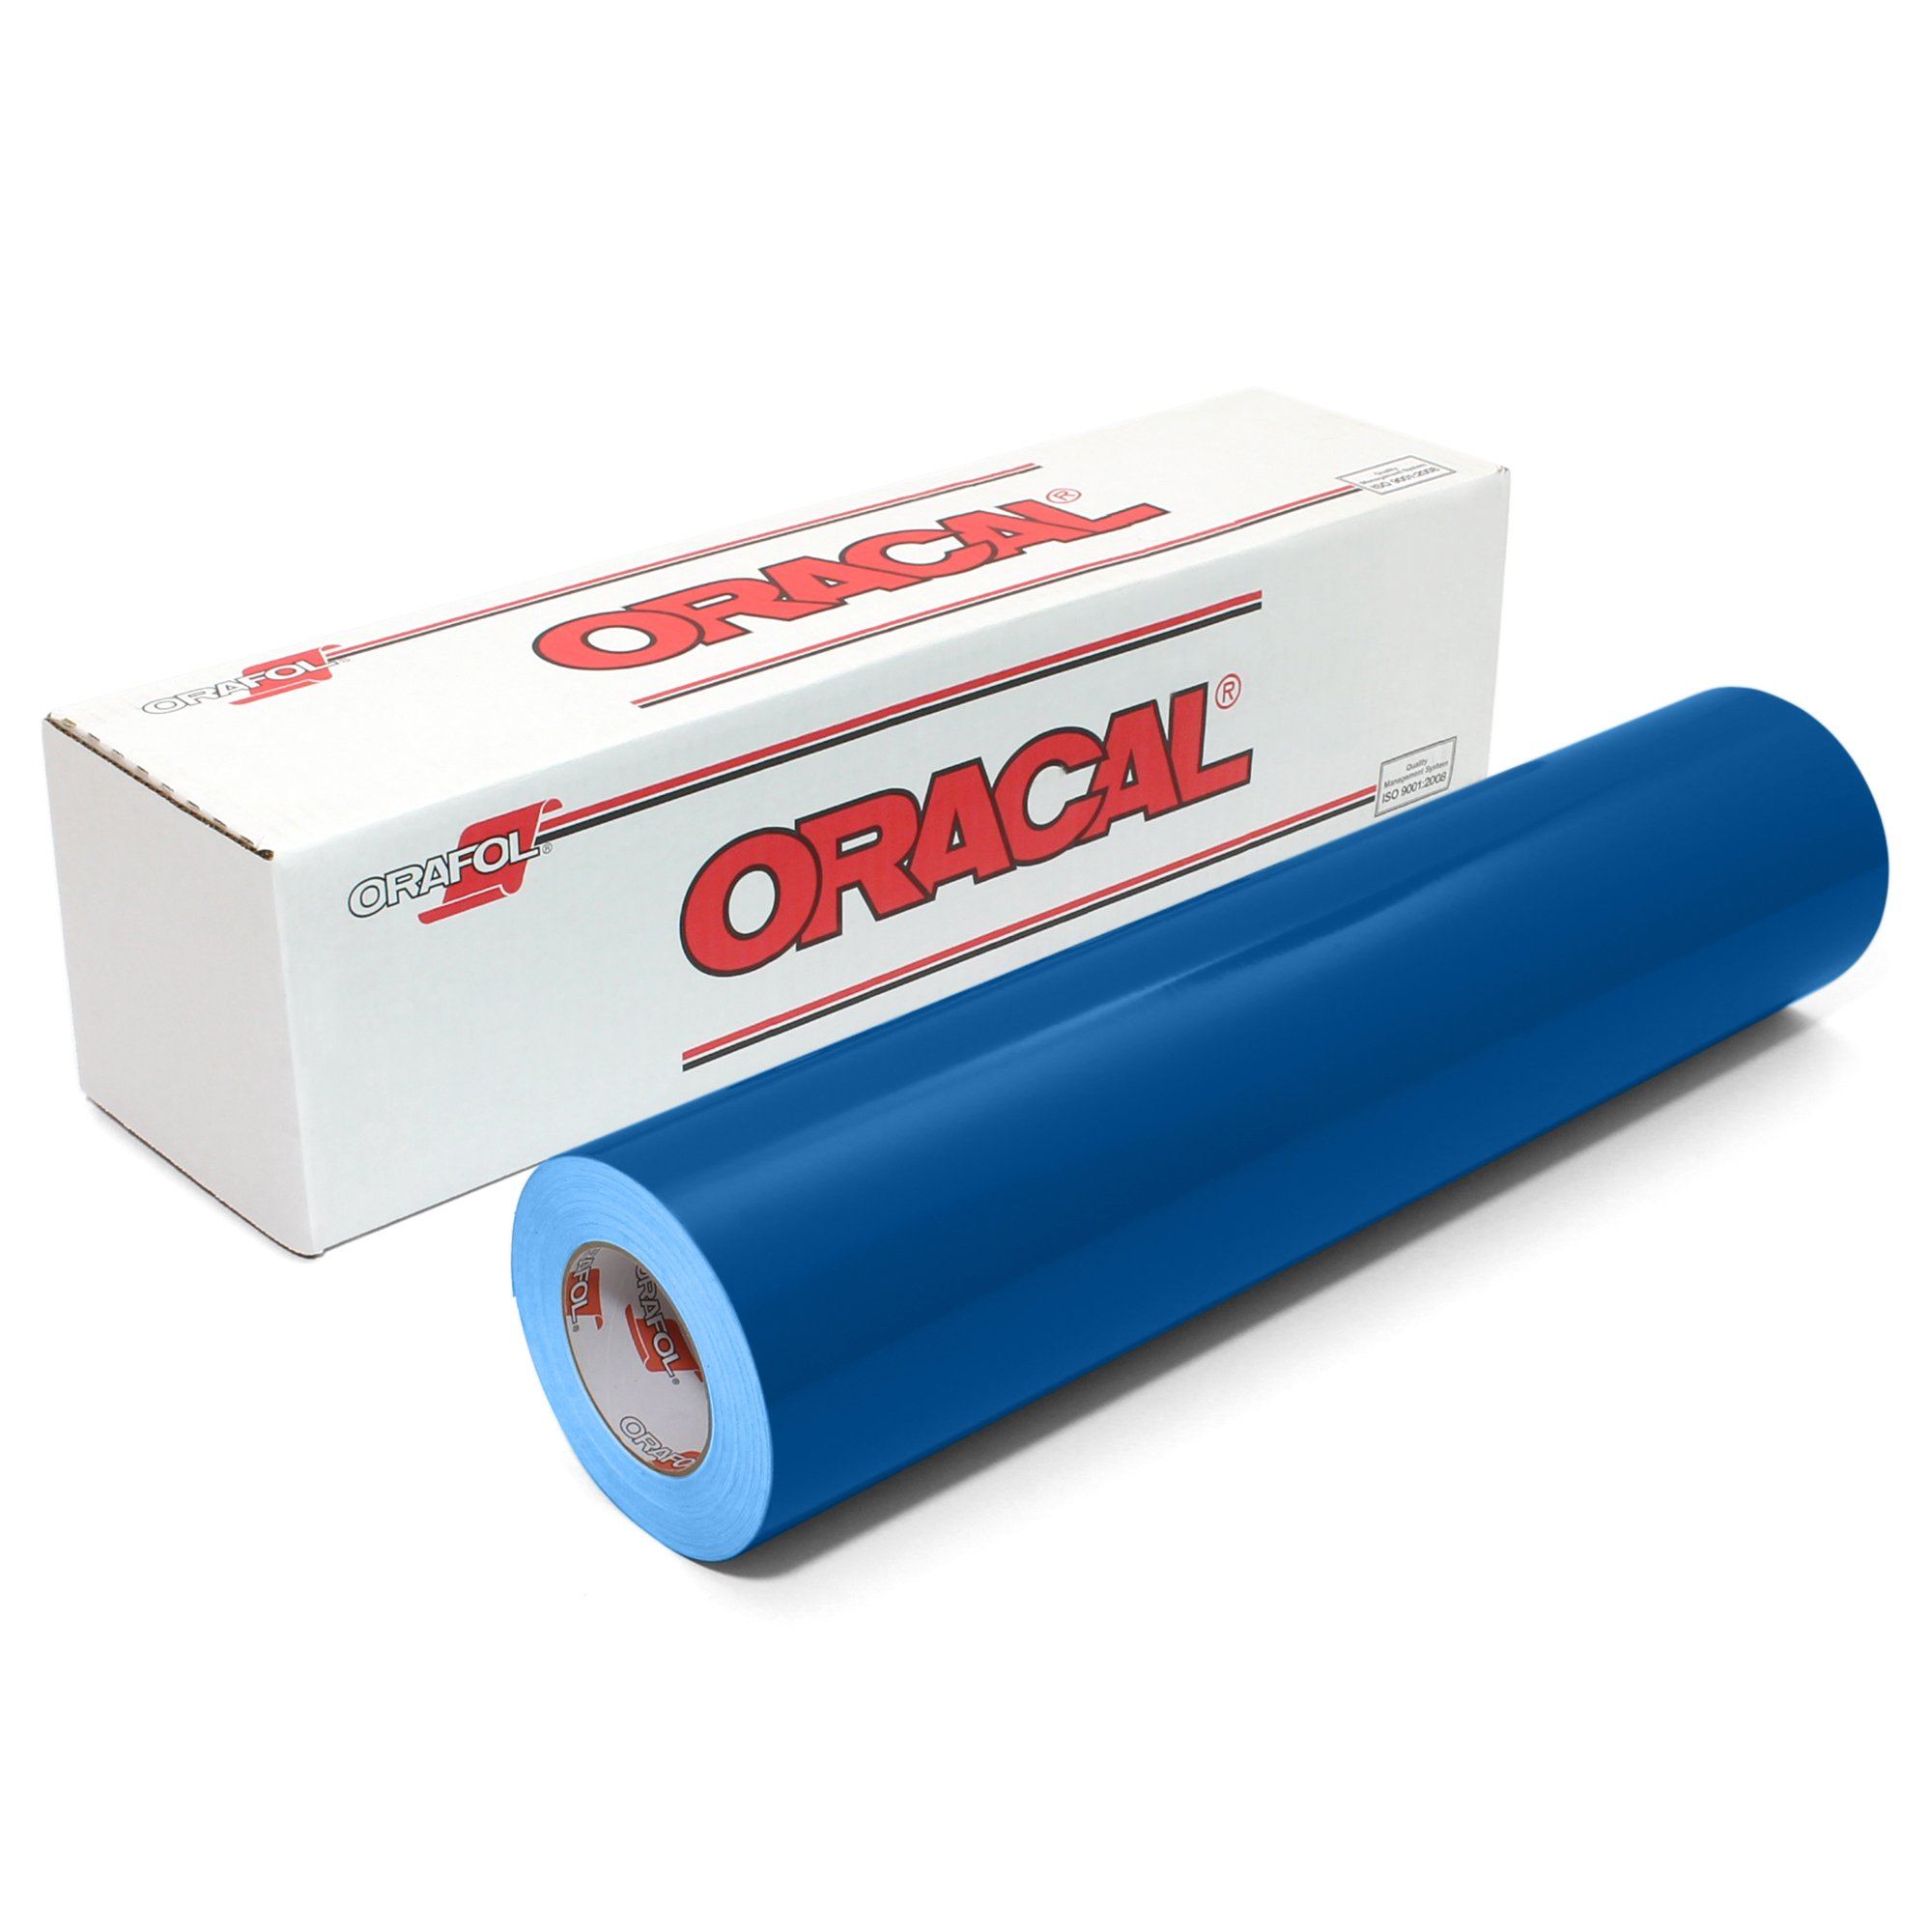 "Oracal 651 Glossy 12"" x 6 Feet Vinyl Rolls - 61 Color"